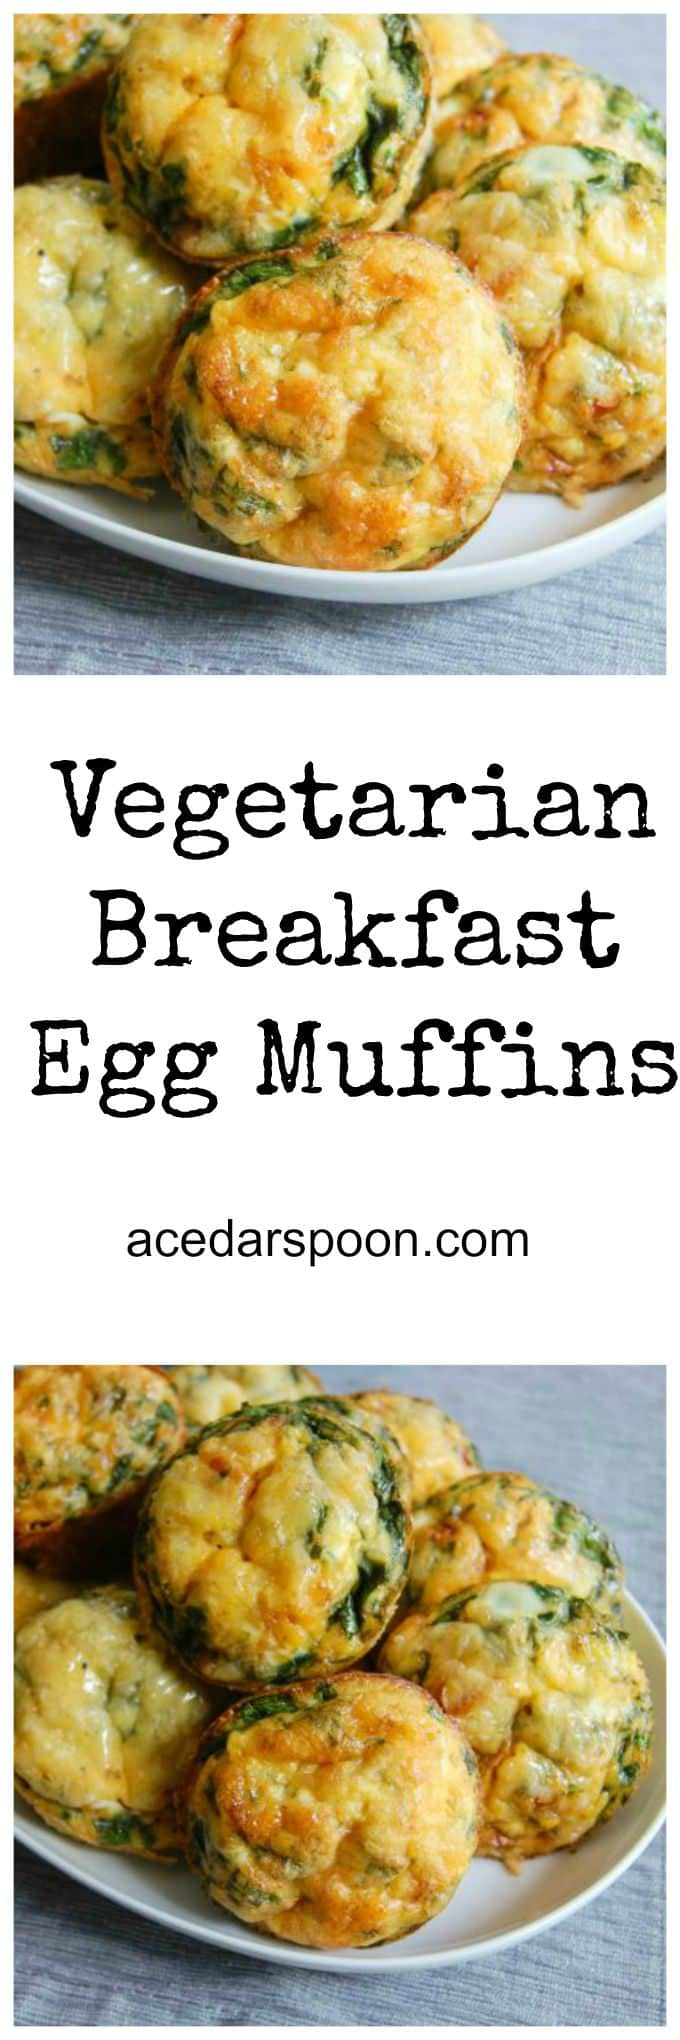 Vegetarian Breakfast Egg Muffins - A Cedar Spoon